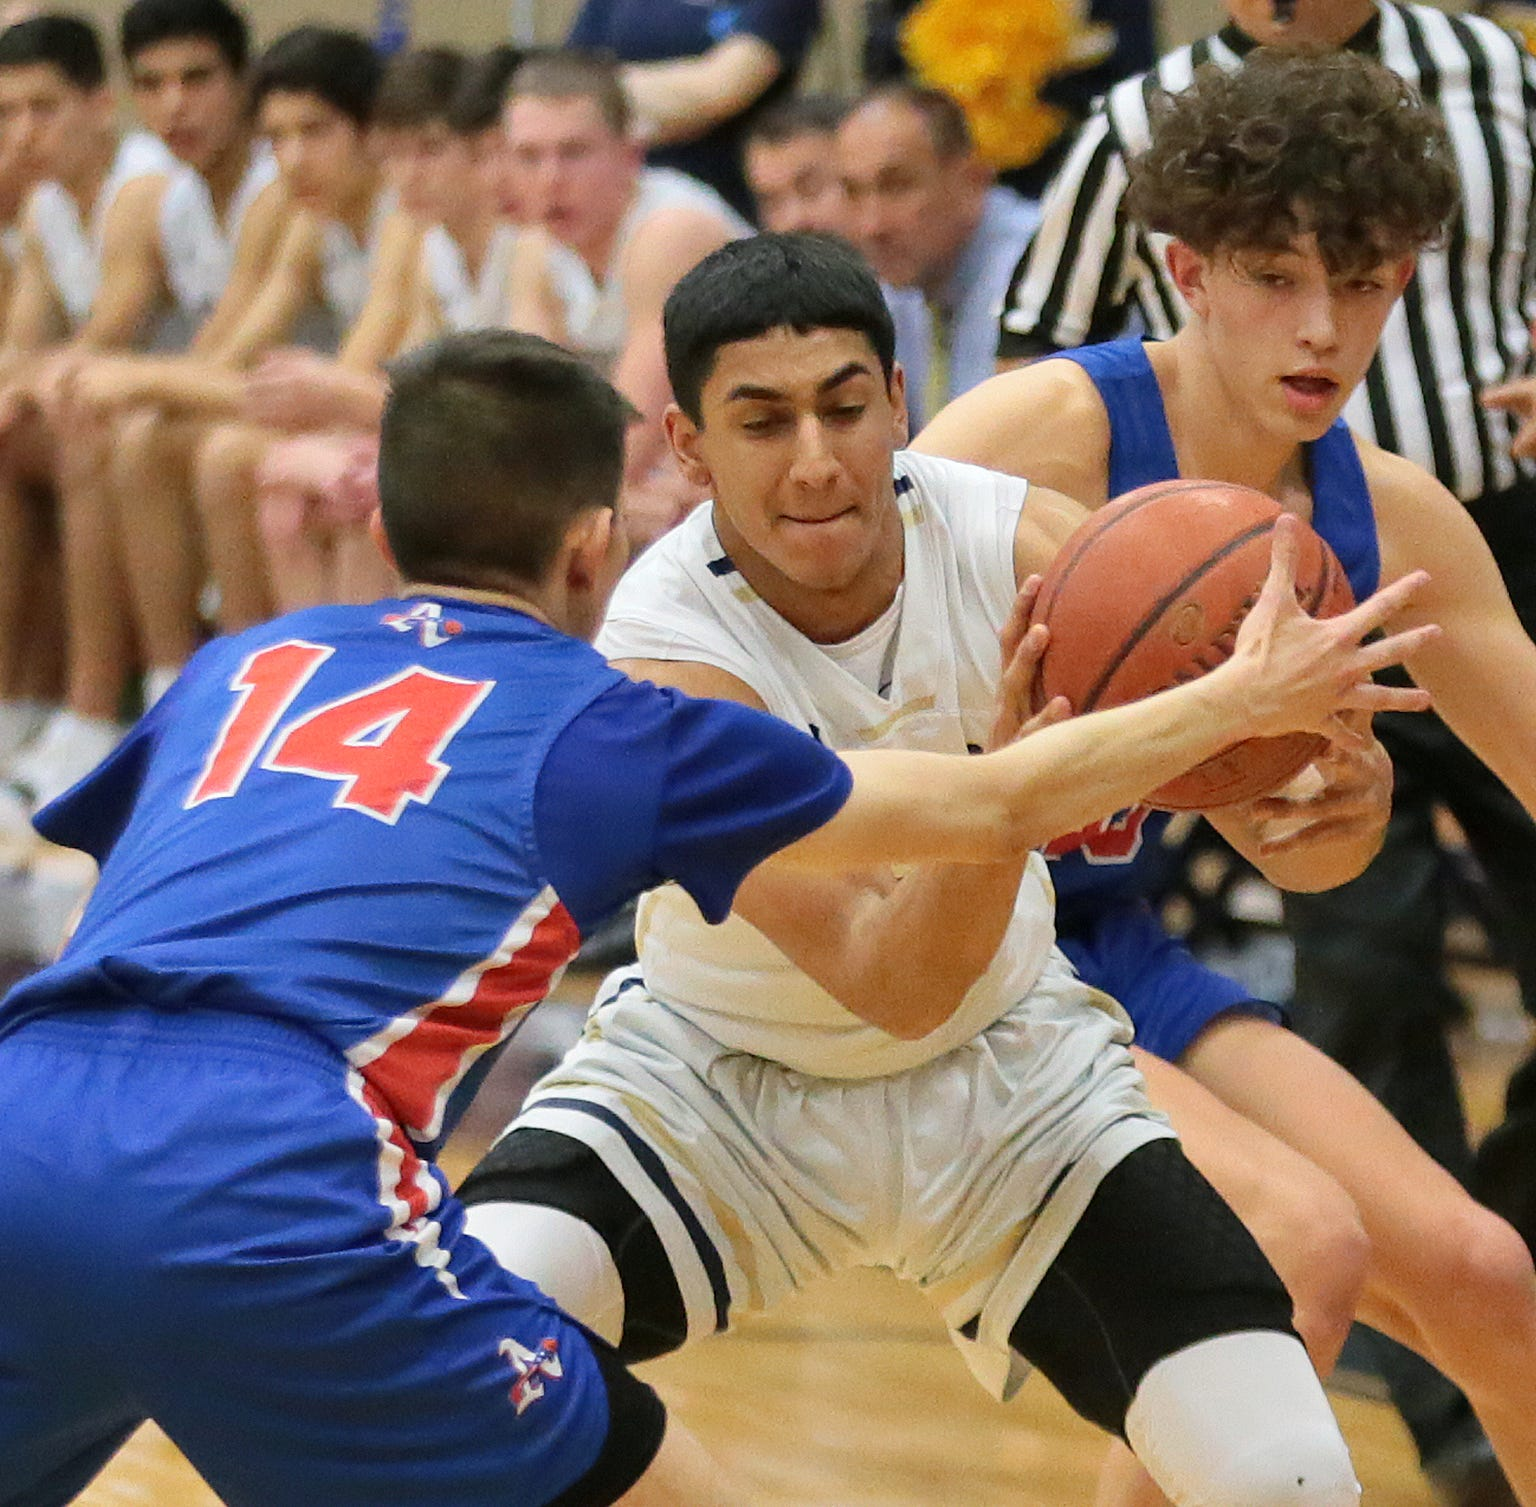 Americas staged an impressive come-from-behind win over Coronado Tuesday night 56-52 at Coronado High School.